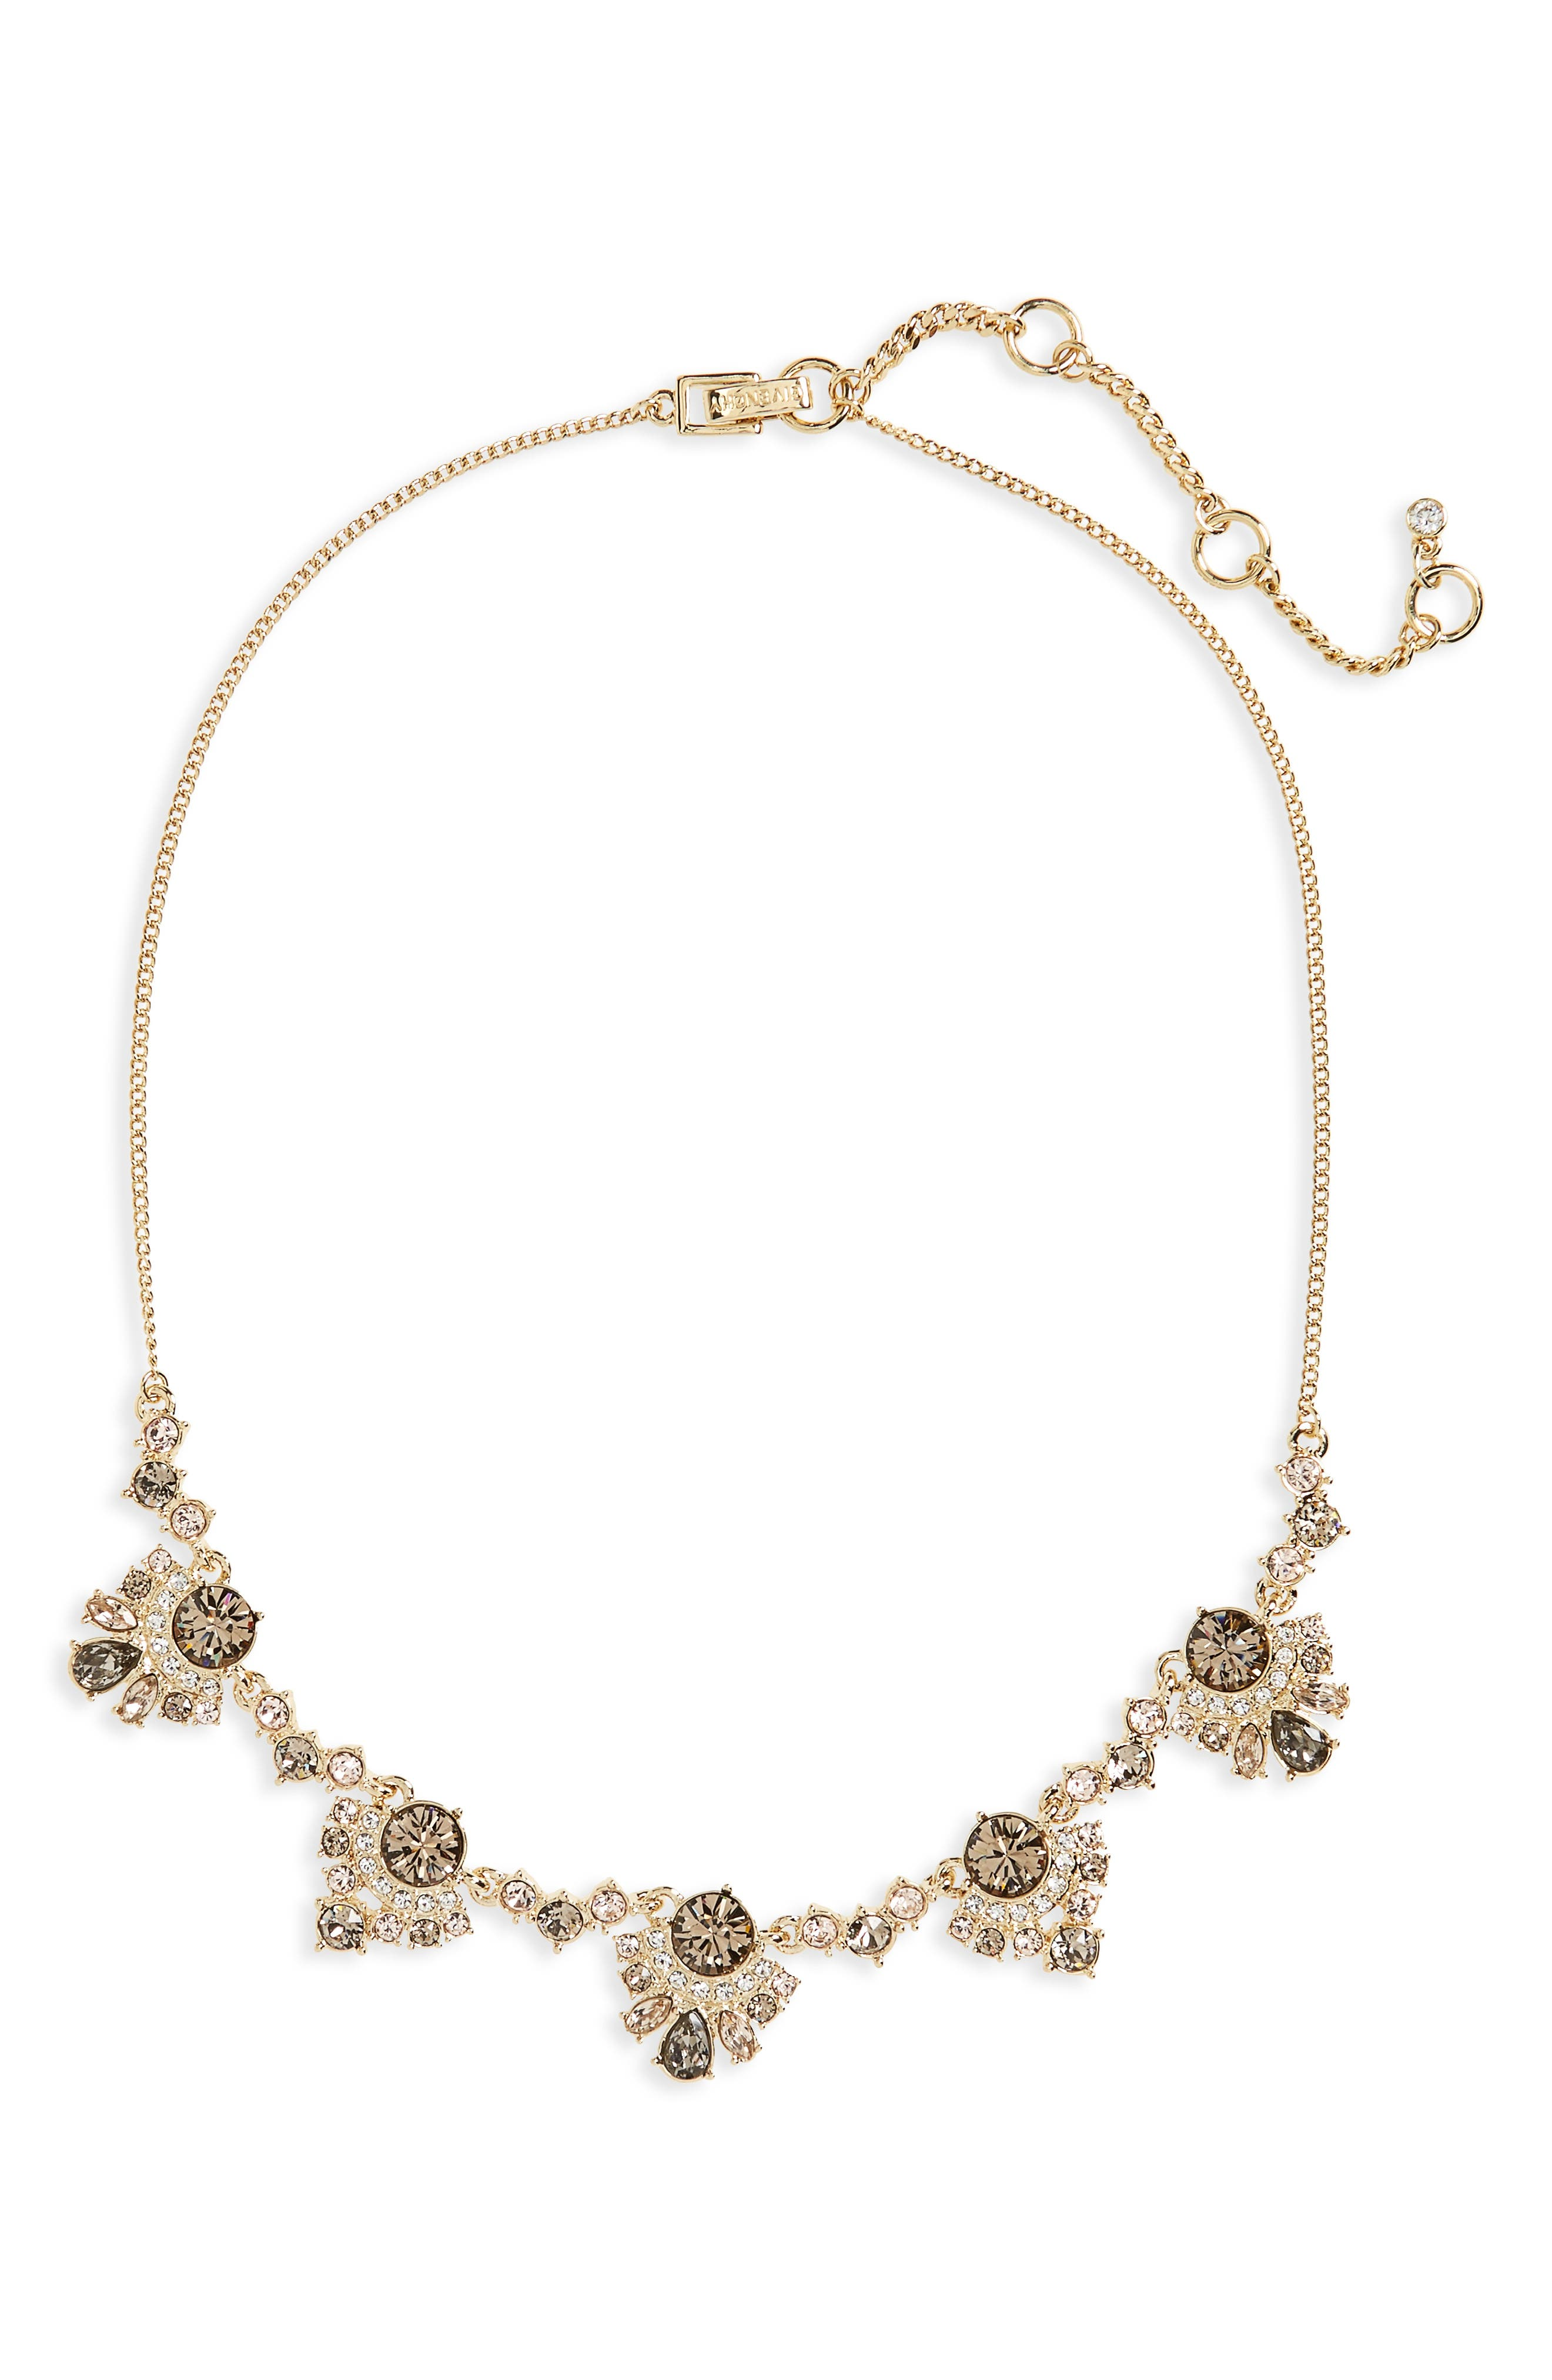 Verona Frontal Necklace,                         Main,                         color, Greige / Gold